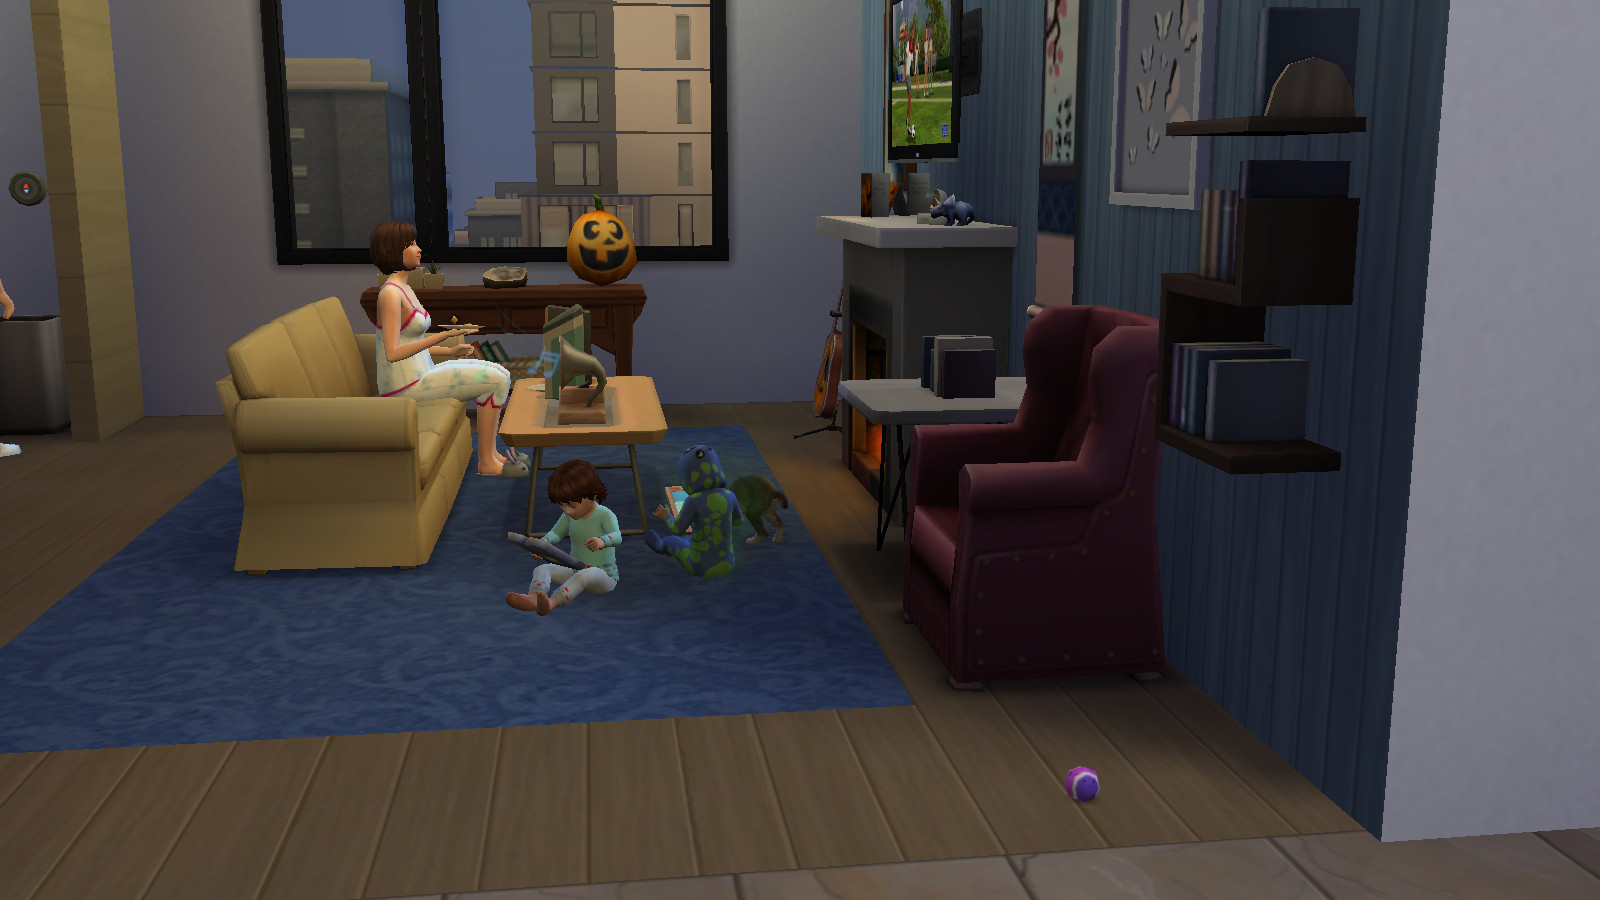 two toddlers in the sims 4 peacefully play with tablets. while an adult sits on the couch, getting some much needed relaxation